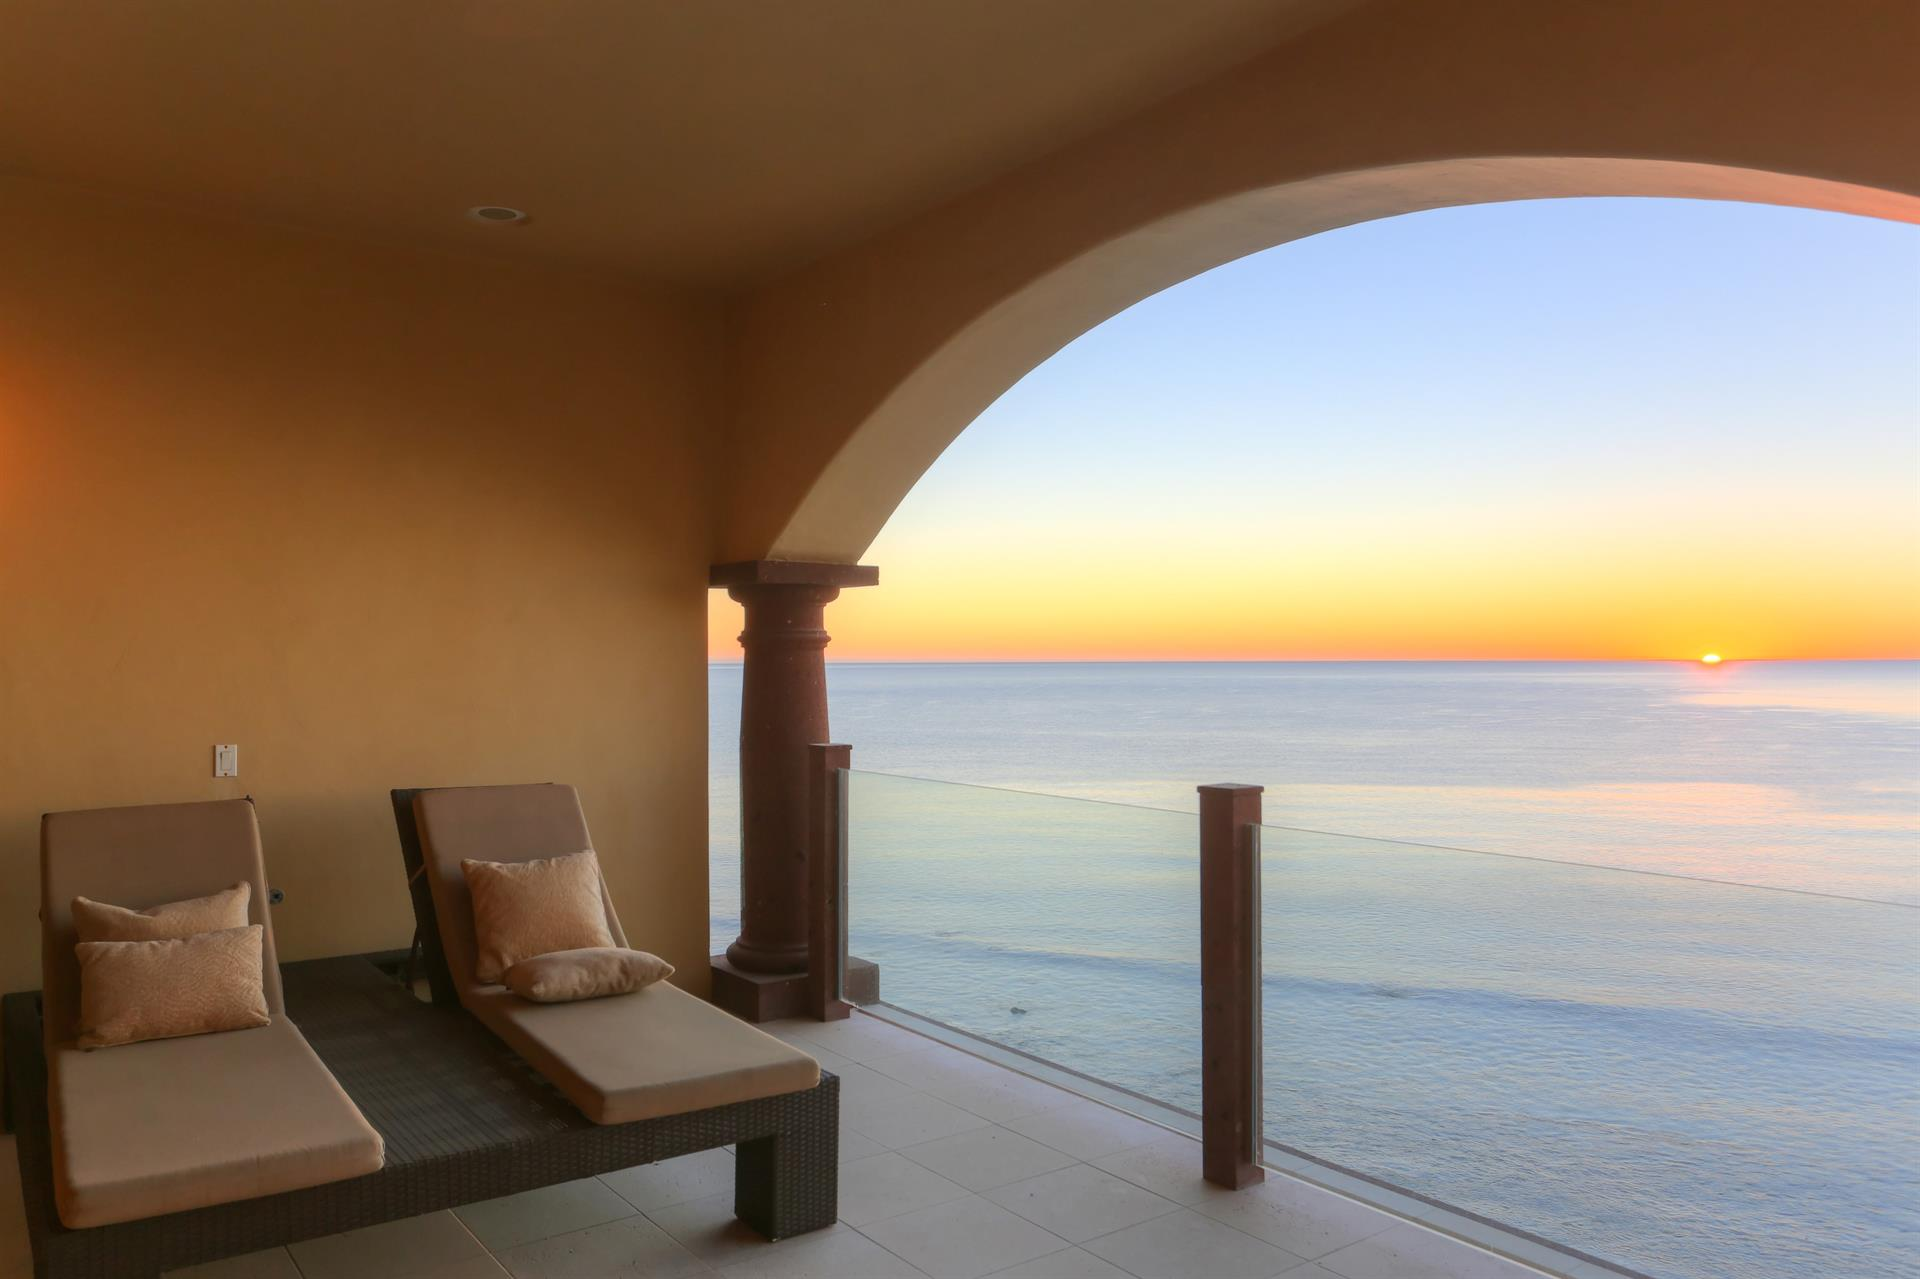 Additional photo for property listing at La Residencia B4  San Jose Del Cabo, Baja California Sur,23406 Мексика